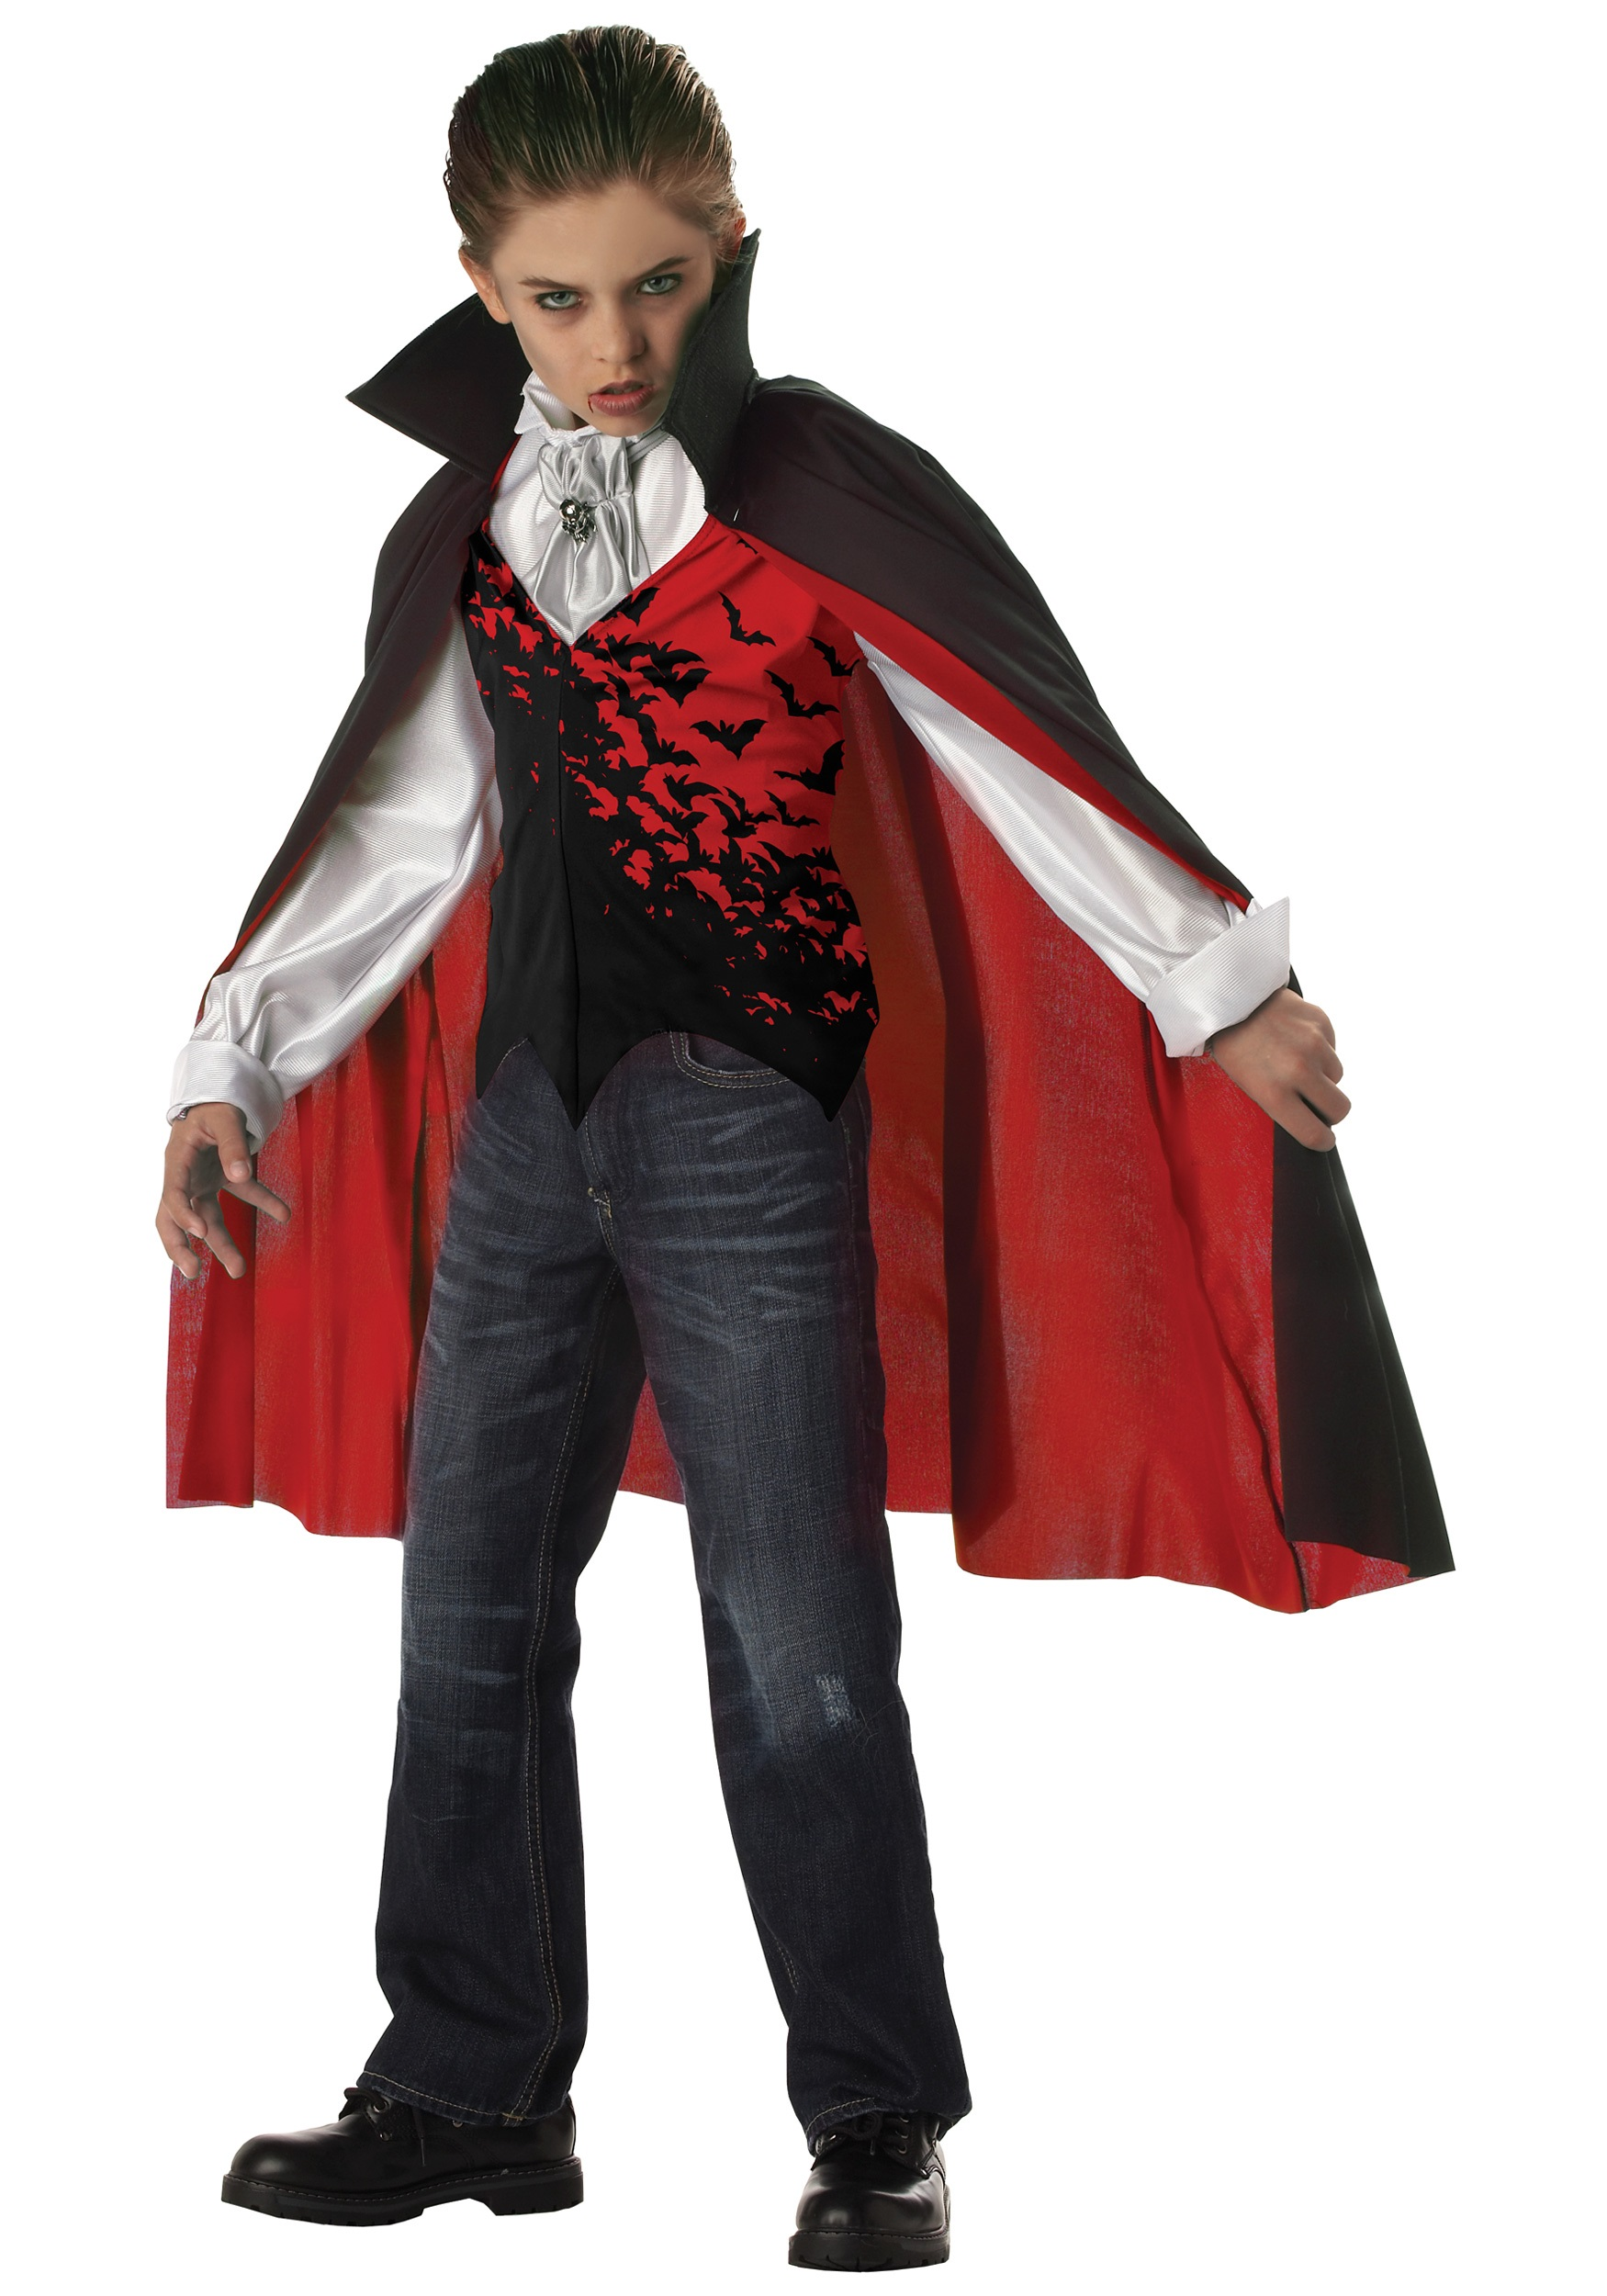 Halloween Vampire Costume Kids.Kids Dark Vampire Costume